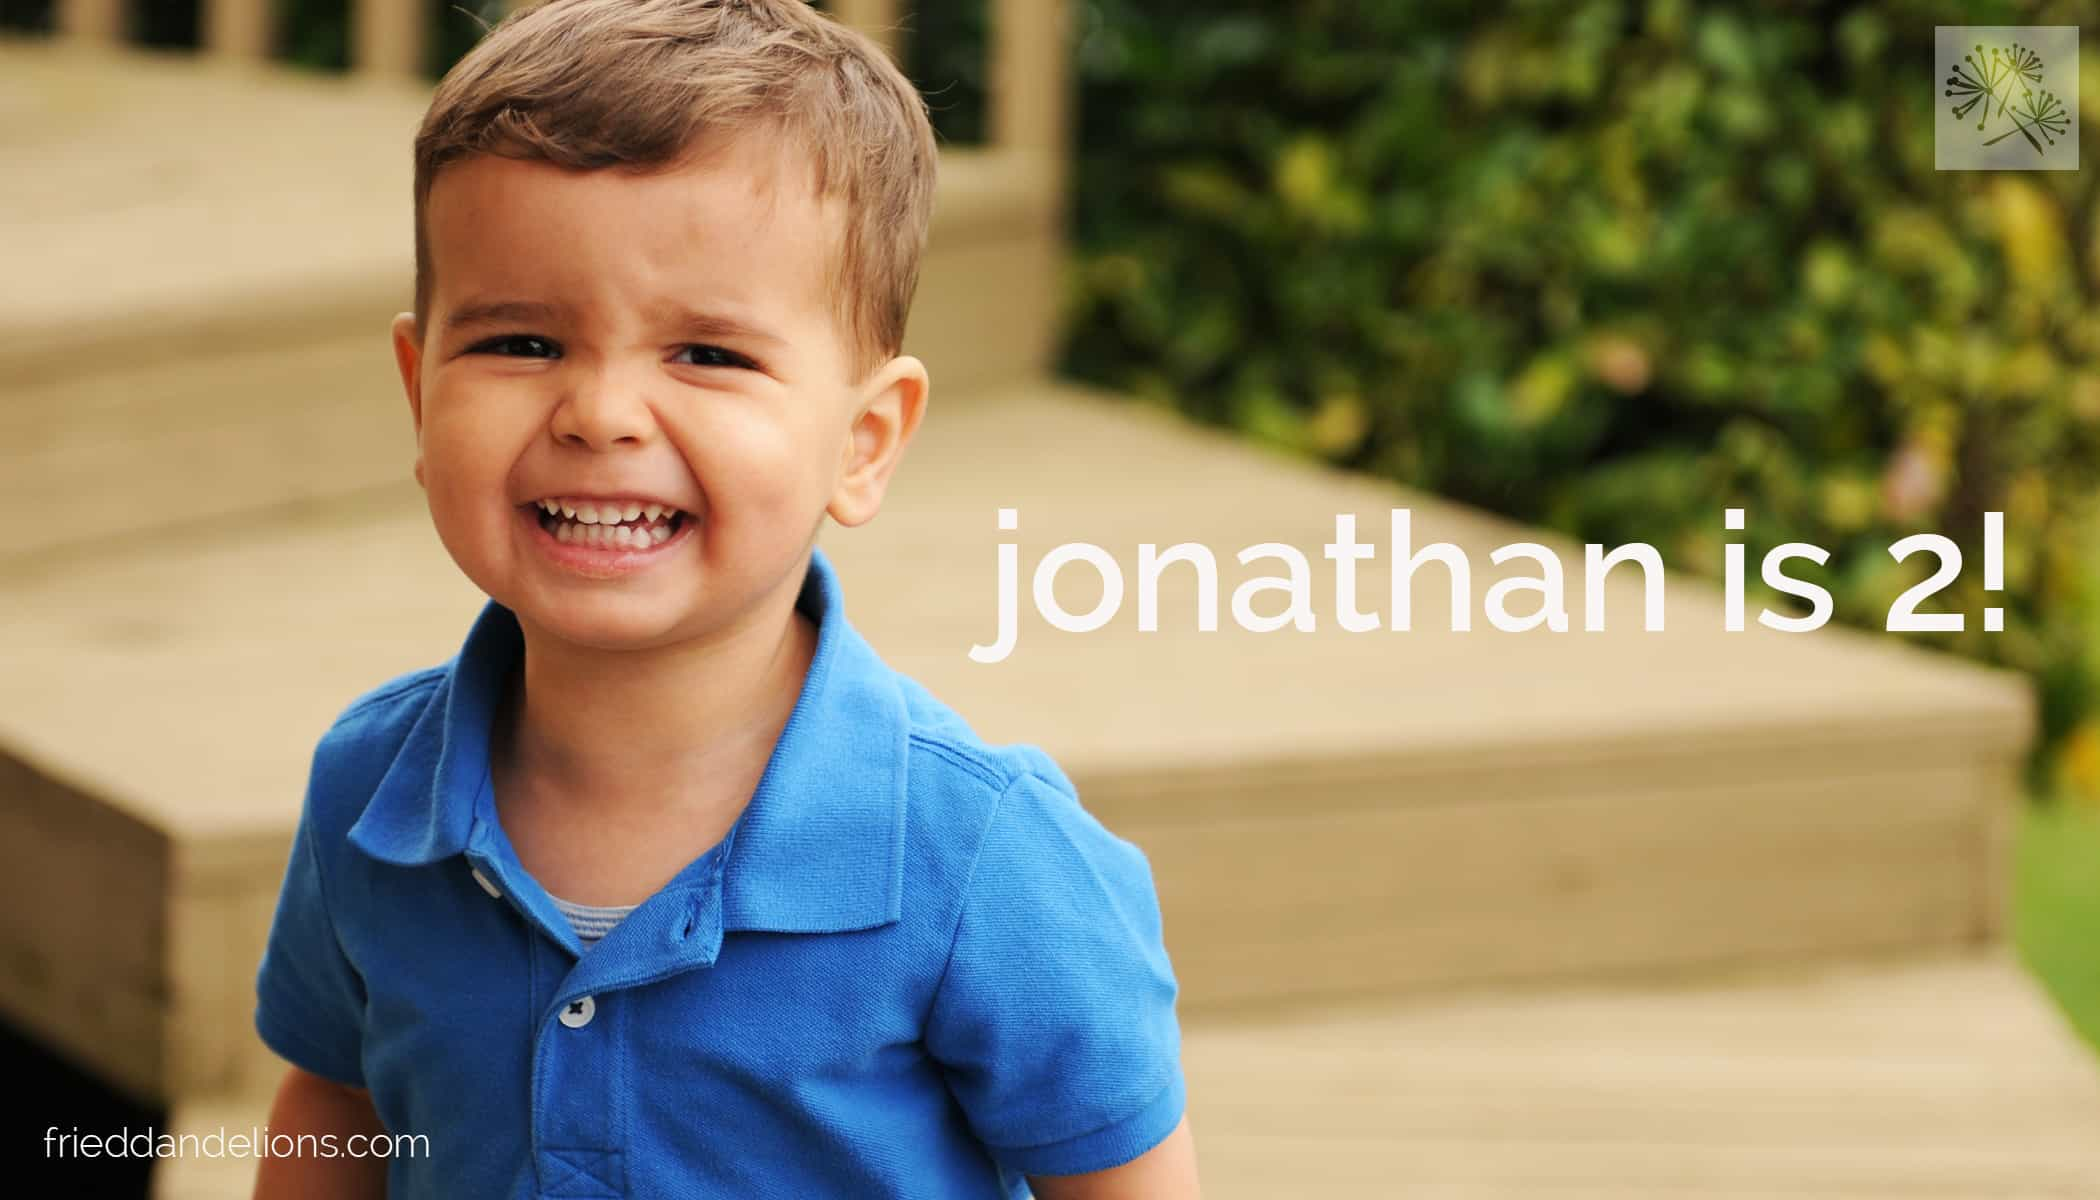 fried dandelions // jonathan is 2!